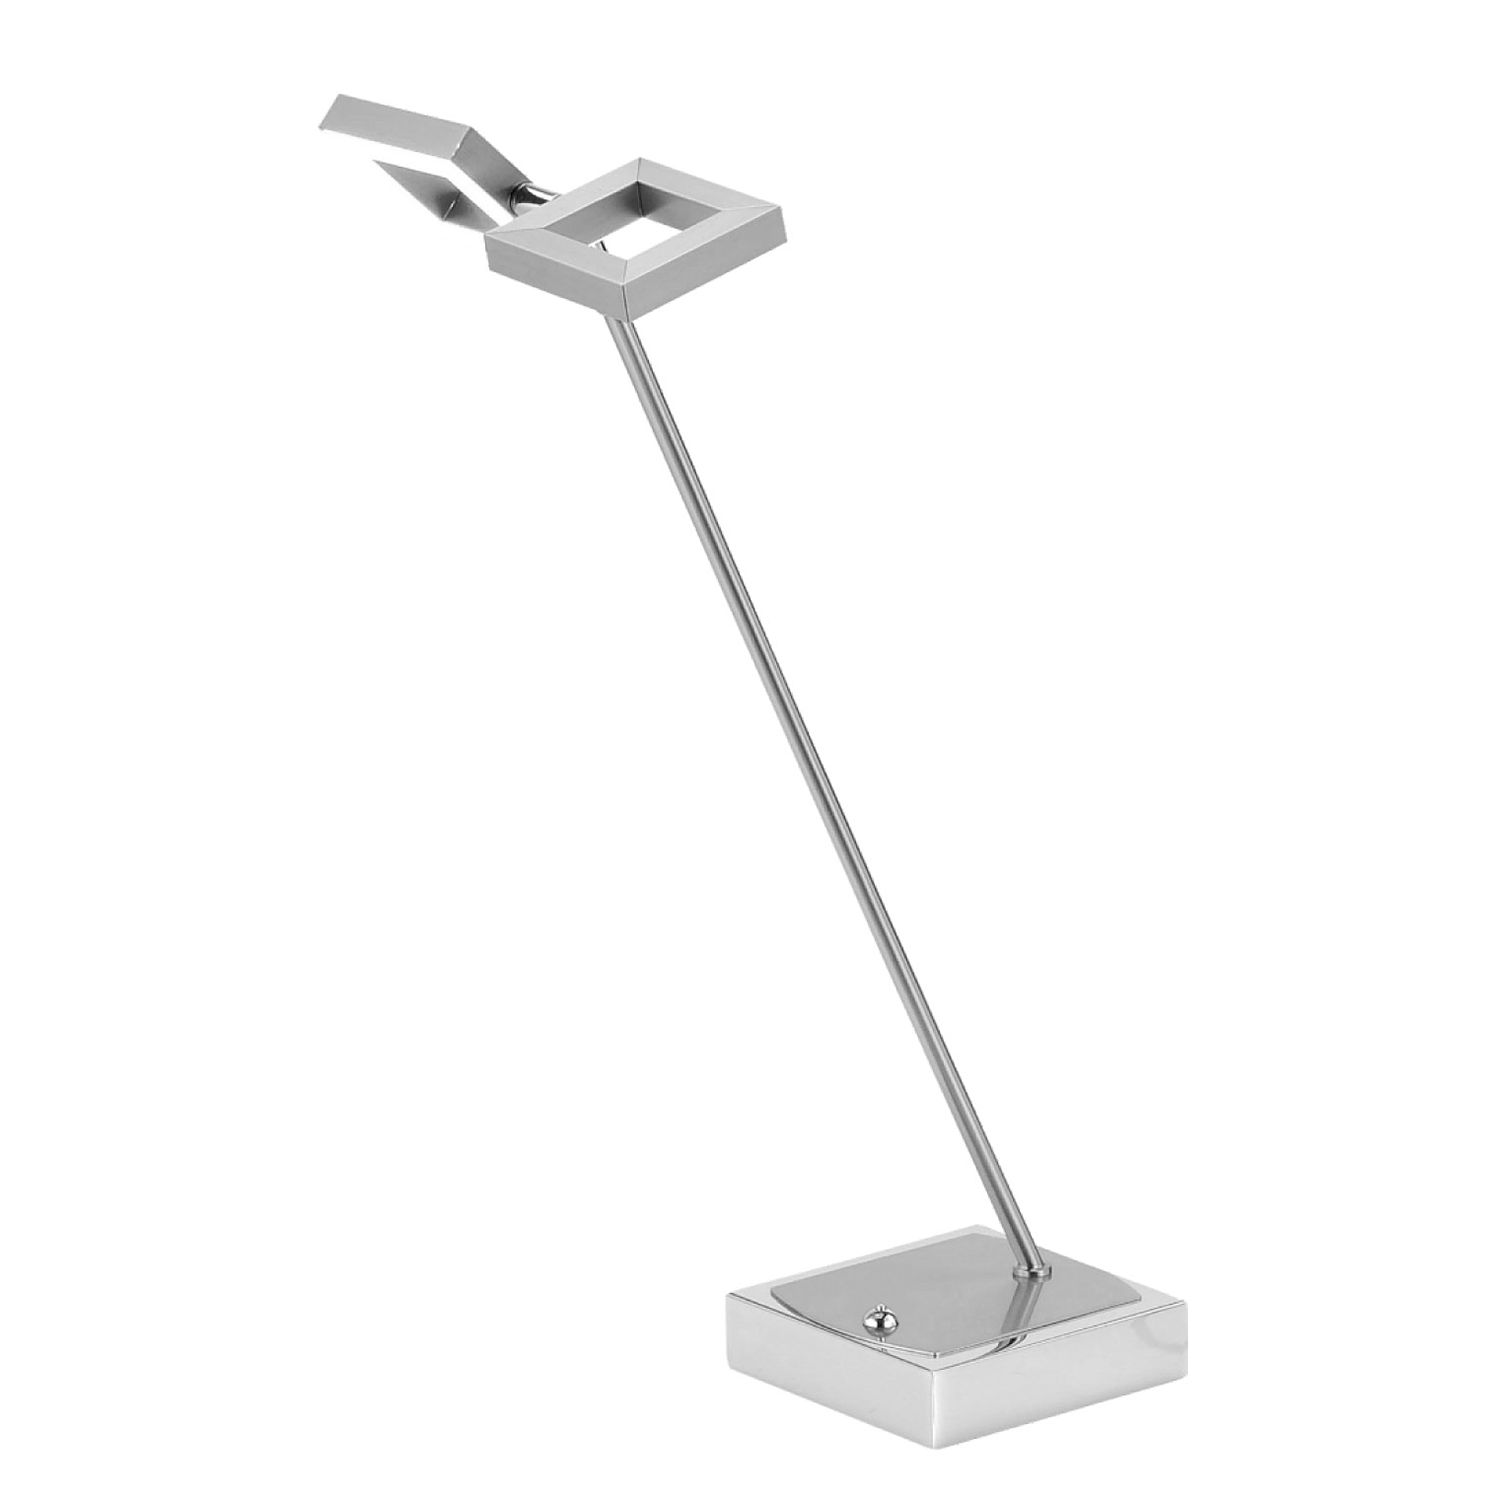 EEK A+, Lampe de table LED Twins - Fer Argenté, Paul Neuhaus